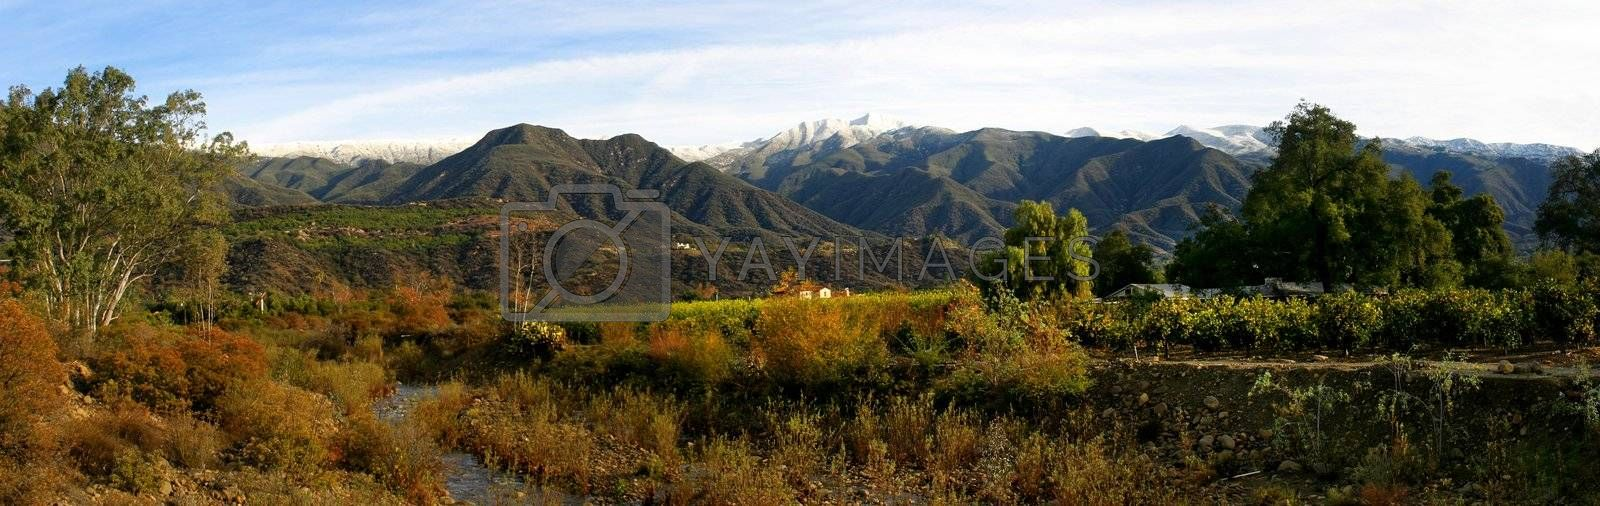 Ojai Valley With Snow (PI) by hlehnerer